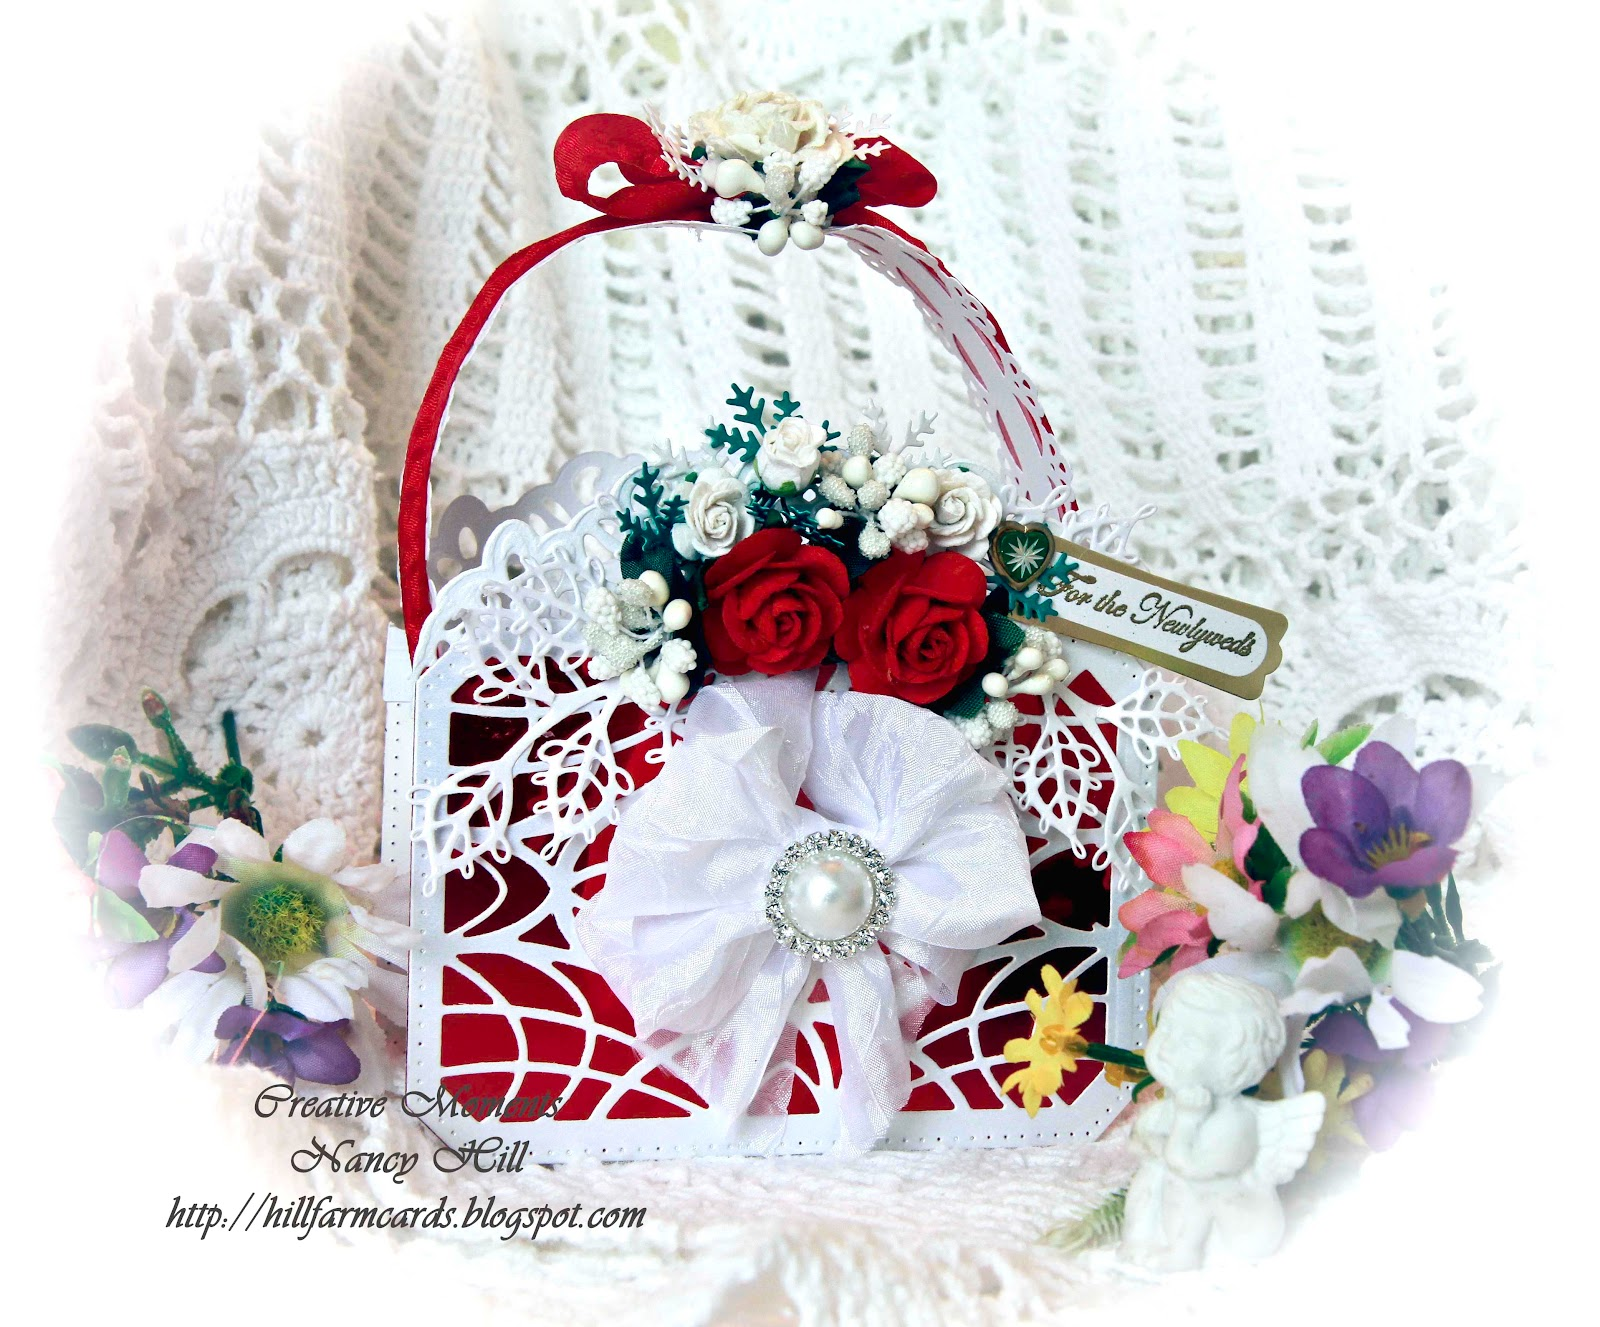 Creative Moments by Nancy Hill: Wedding Purse gift bag